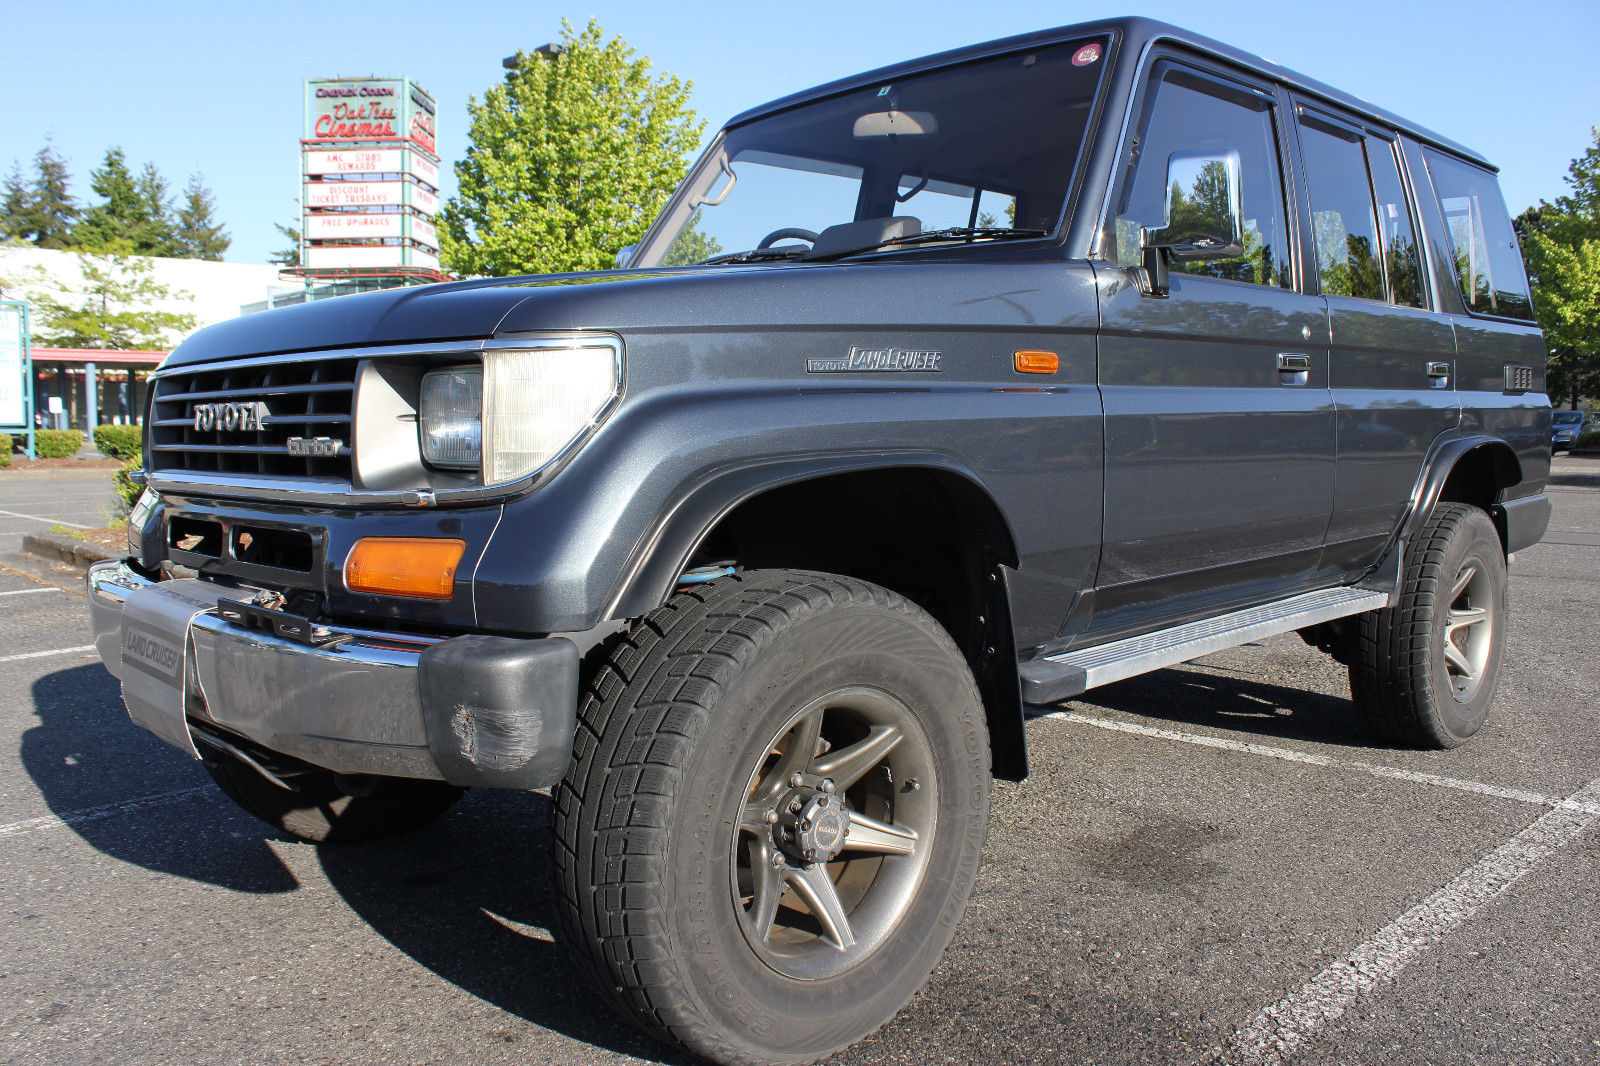 2016 Toyota Tundra Diesel >> Turbo diesel 1992 Toyota Land Cruiser offroad for sale